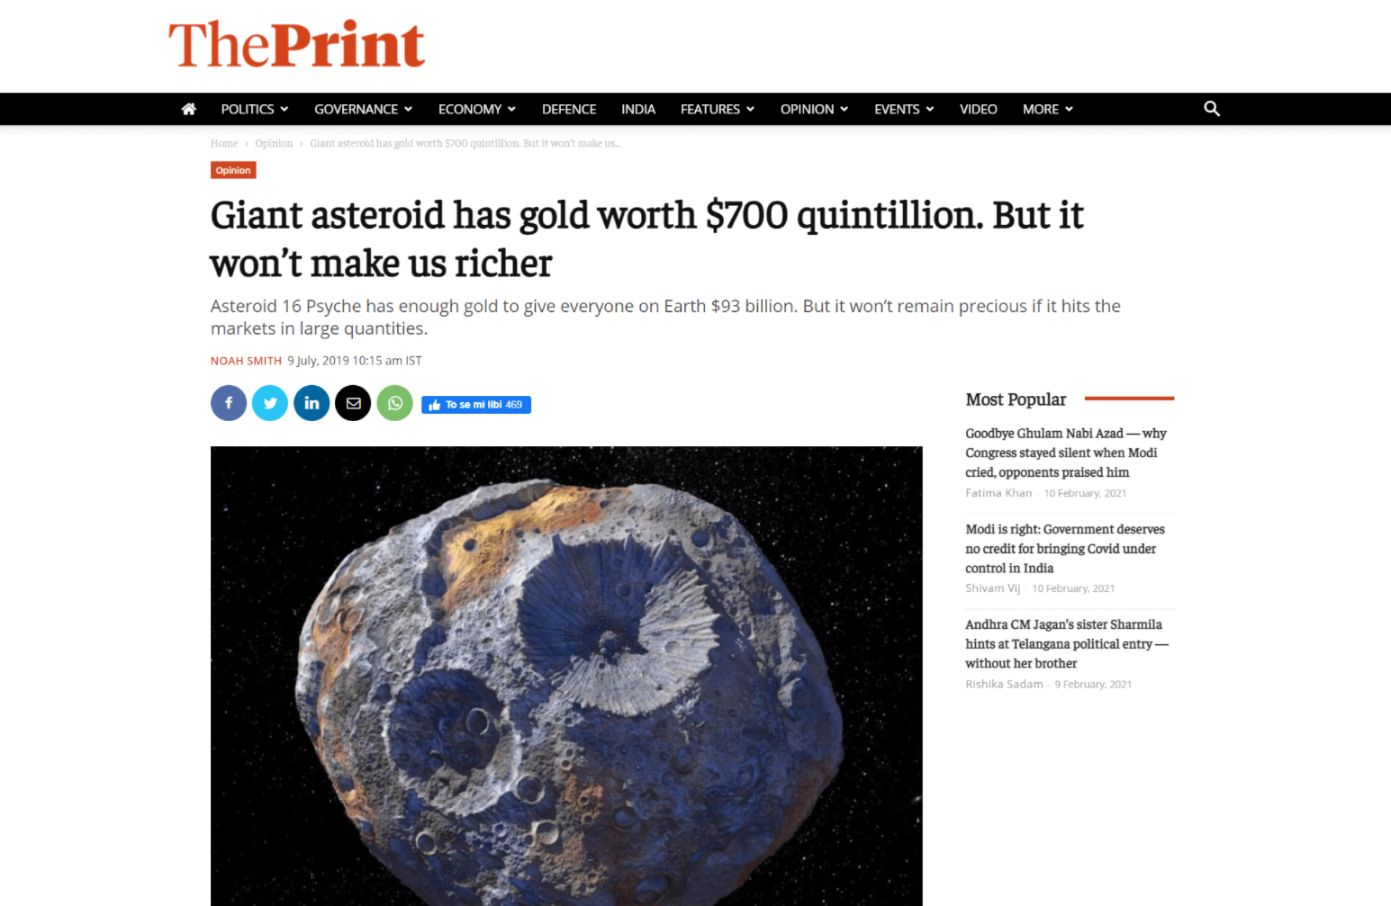 https://theprint.in/opinion/giant-asteroid-has-gold-worth-700-quintillion-but-it-wont-make-us-richer/260482/